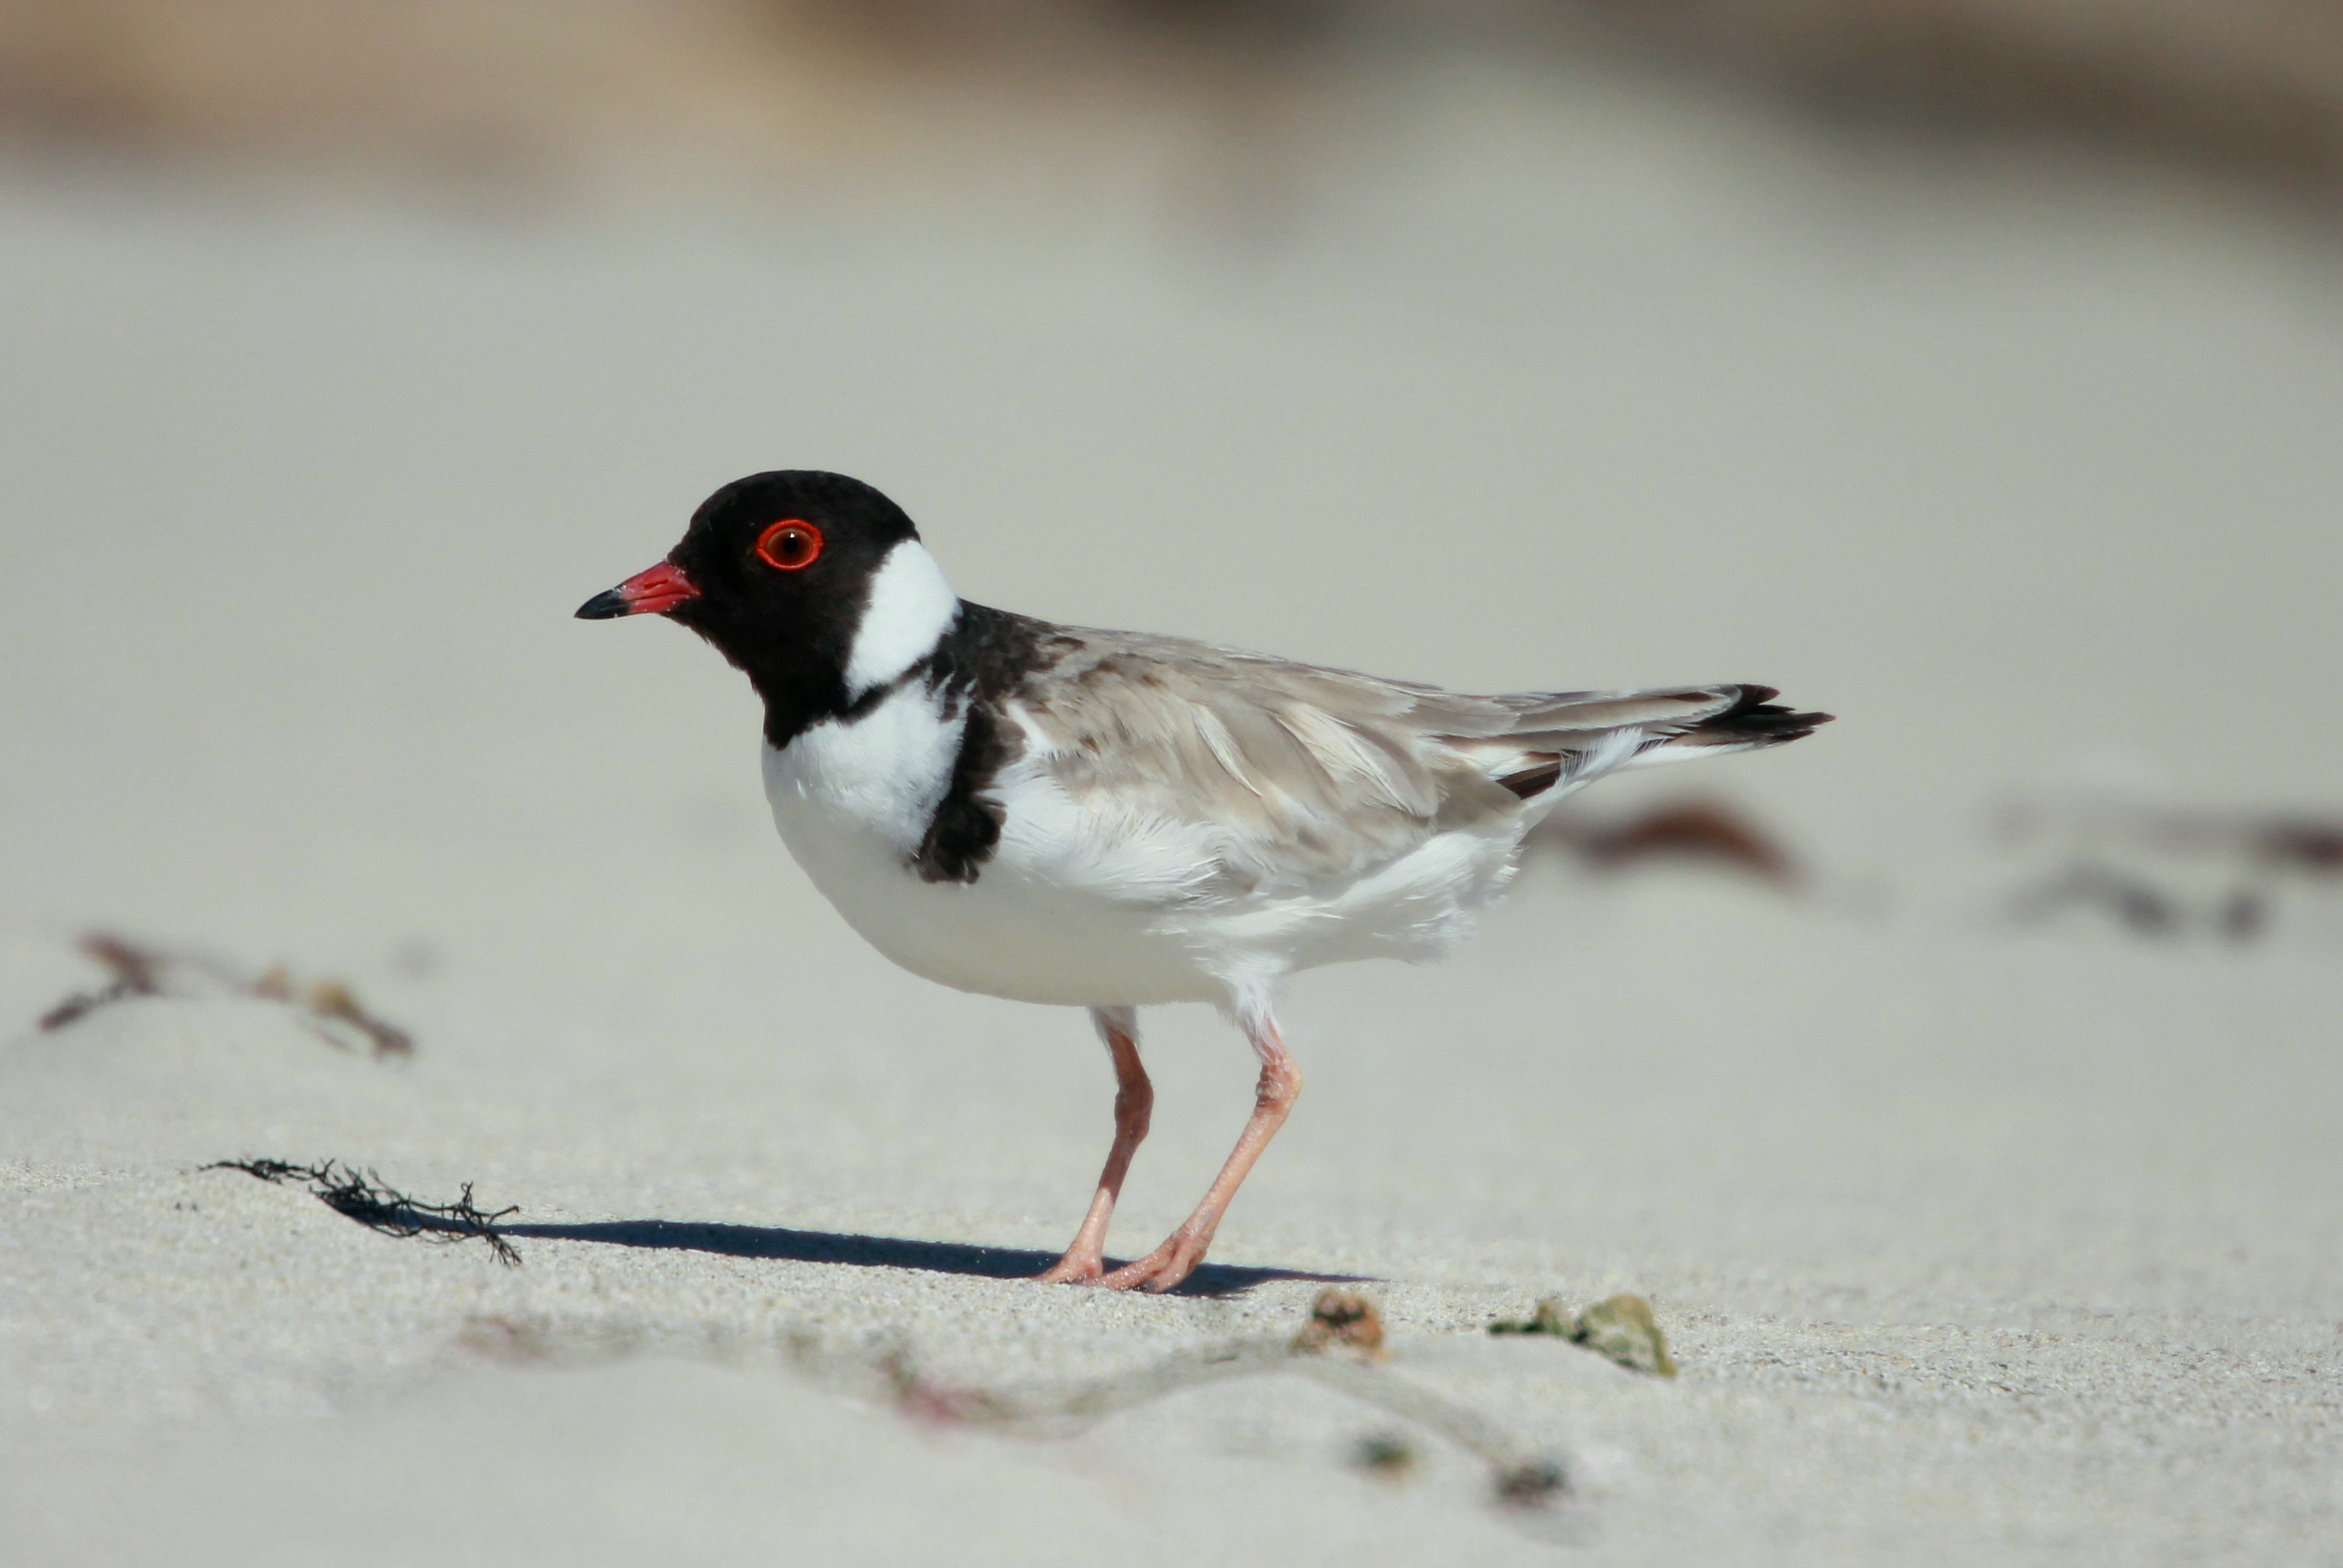 Get to know the threatened bird and its adorable babies surviving on Adelaide's coast - Green Adelaide